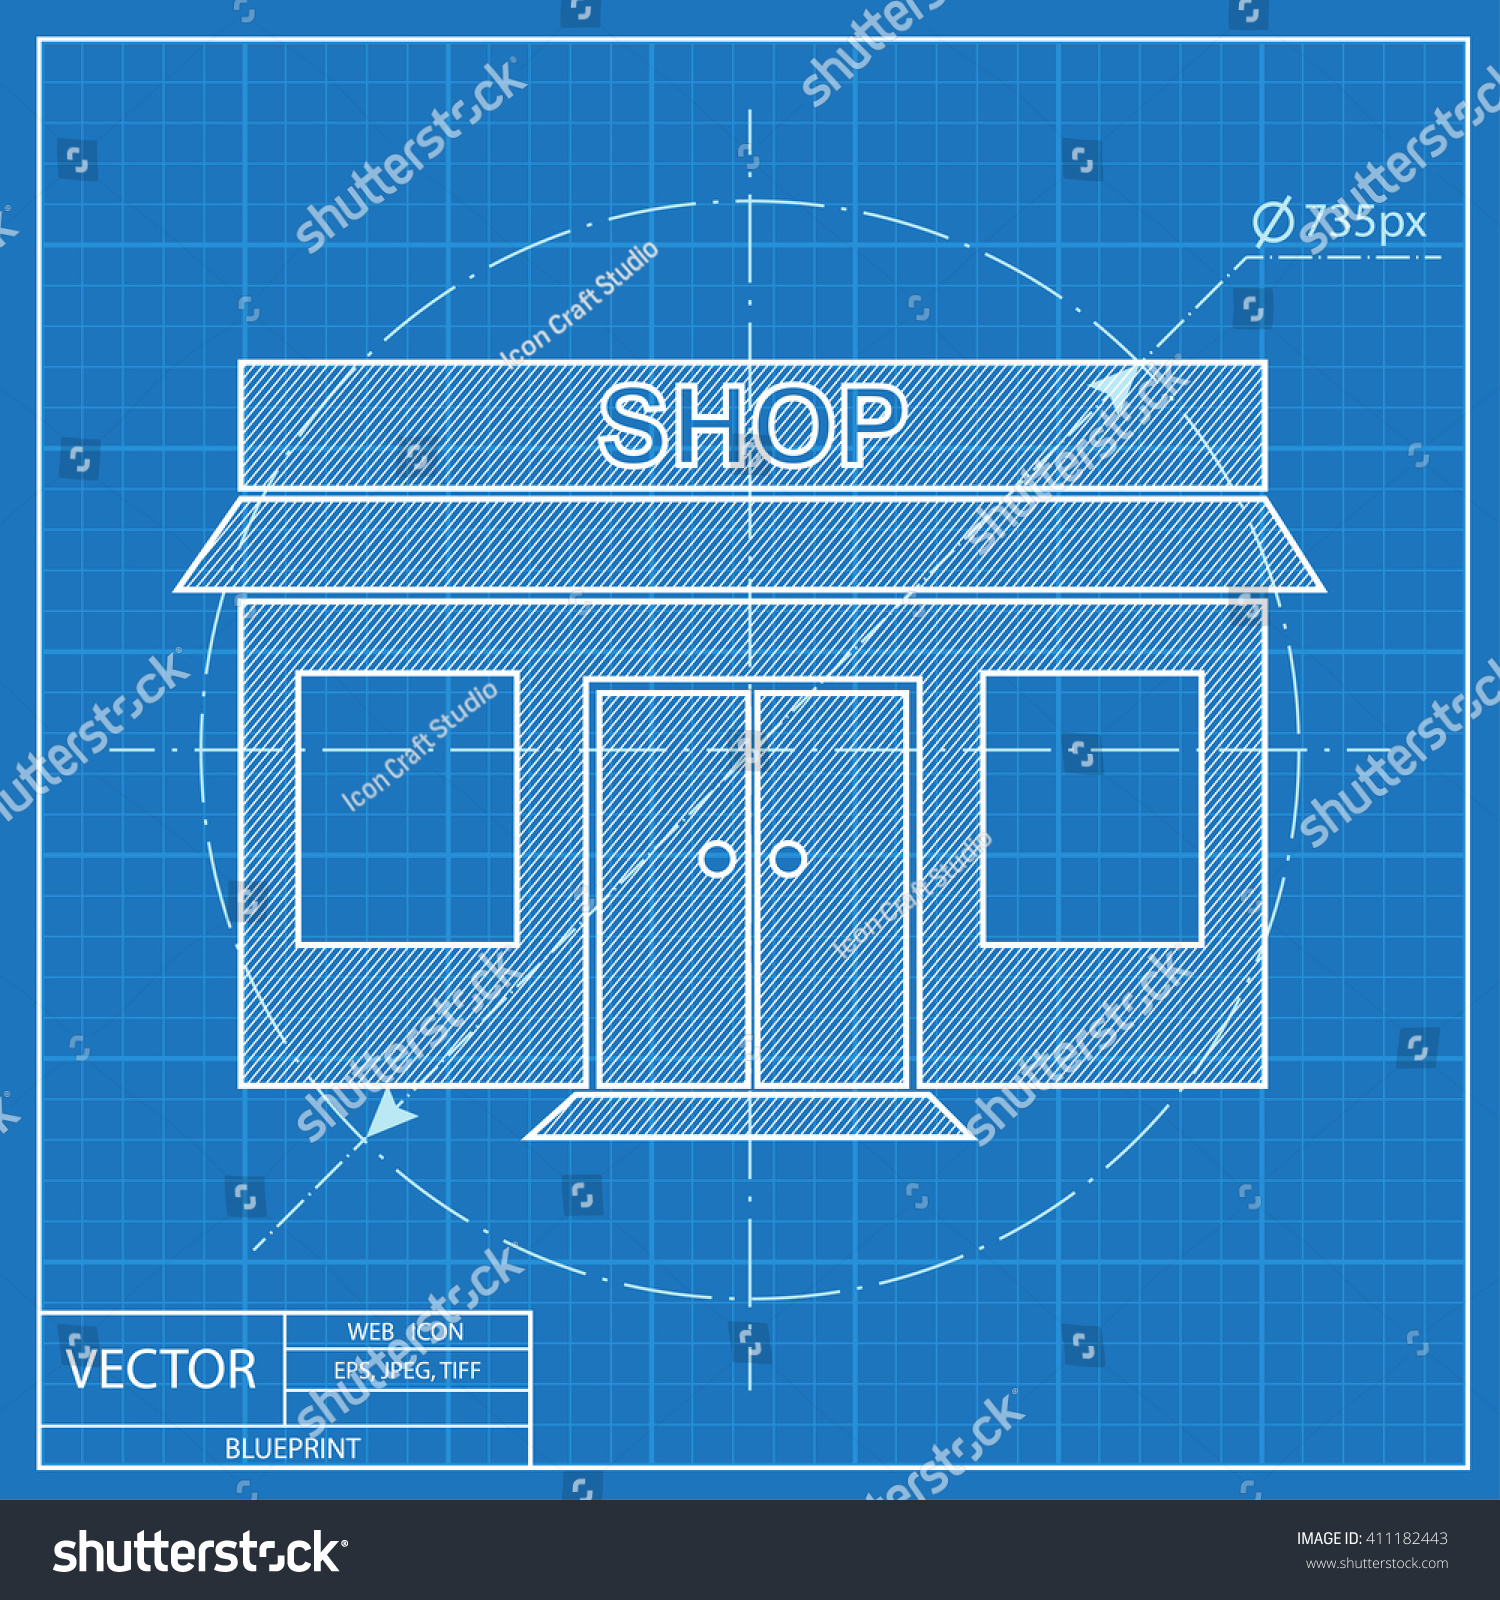 Shop icon blueprint style vectores en stock 411182443 shutterstock shop icon blueprint style malvernweather Images